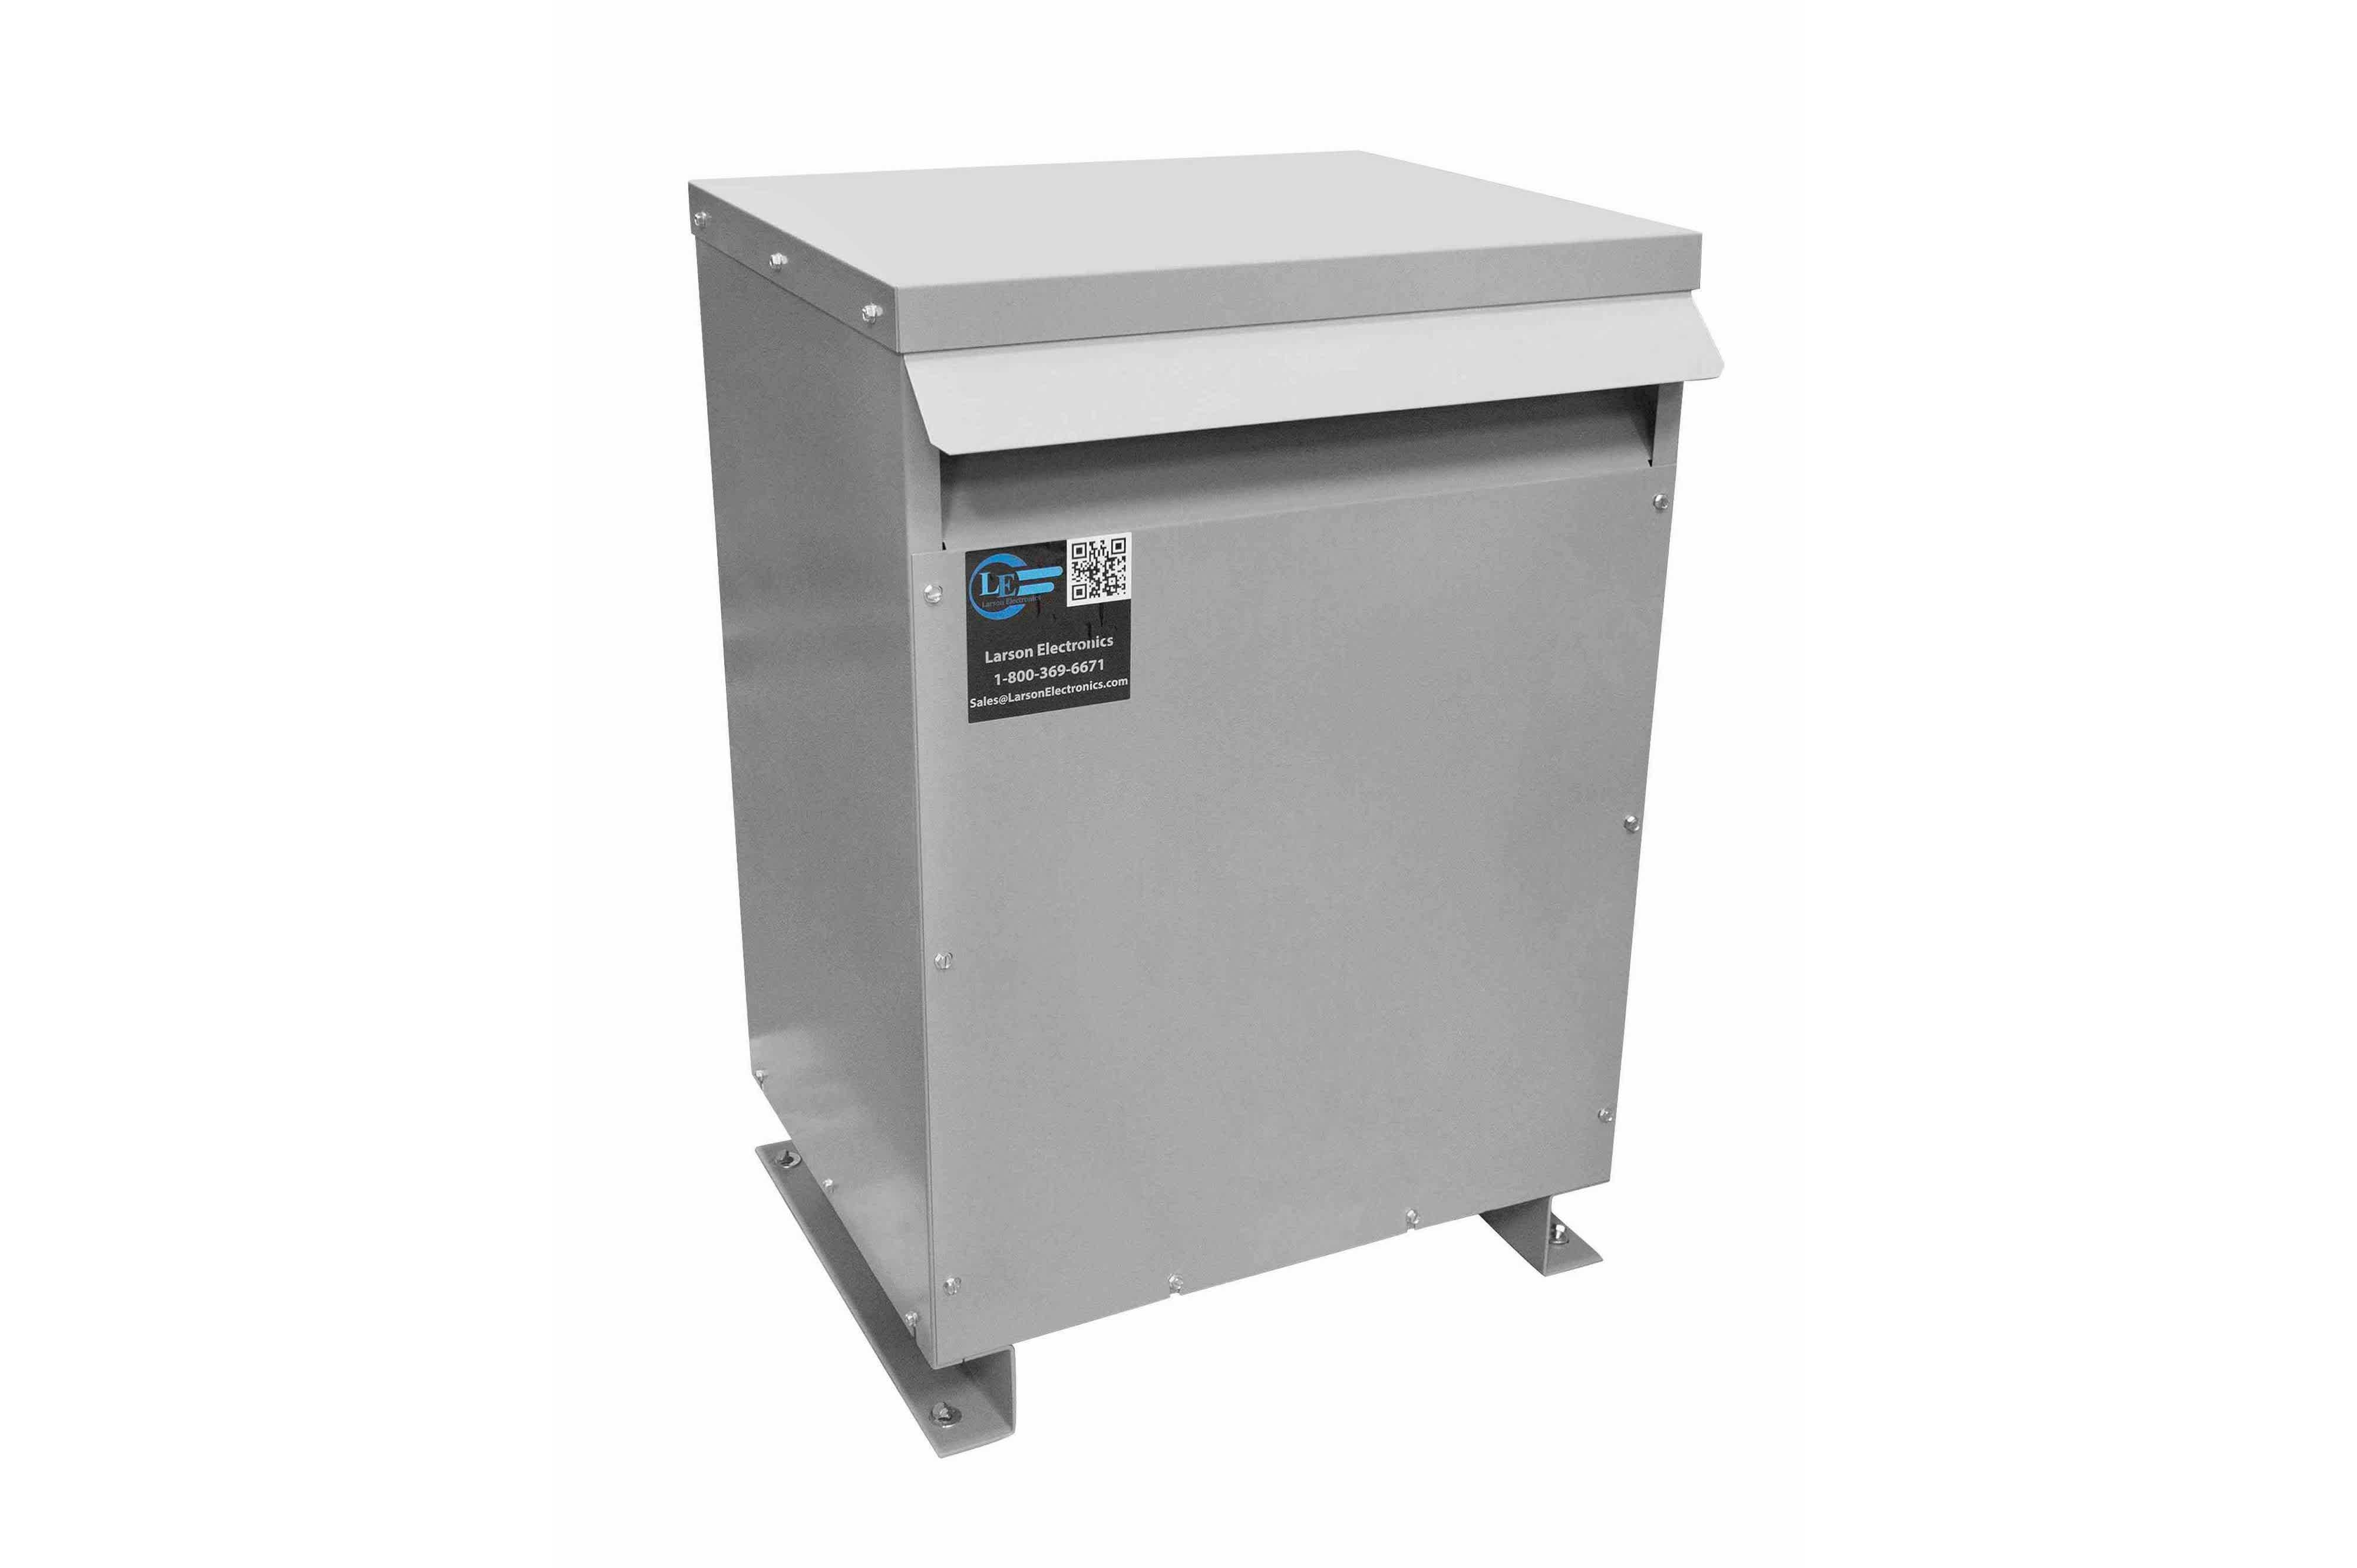 75 kVA 3PH Isolation Transformer, 400V Wye Primary, 480V Delta Secondary, N3R, Ventilated, 60 Hz